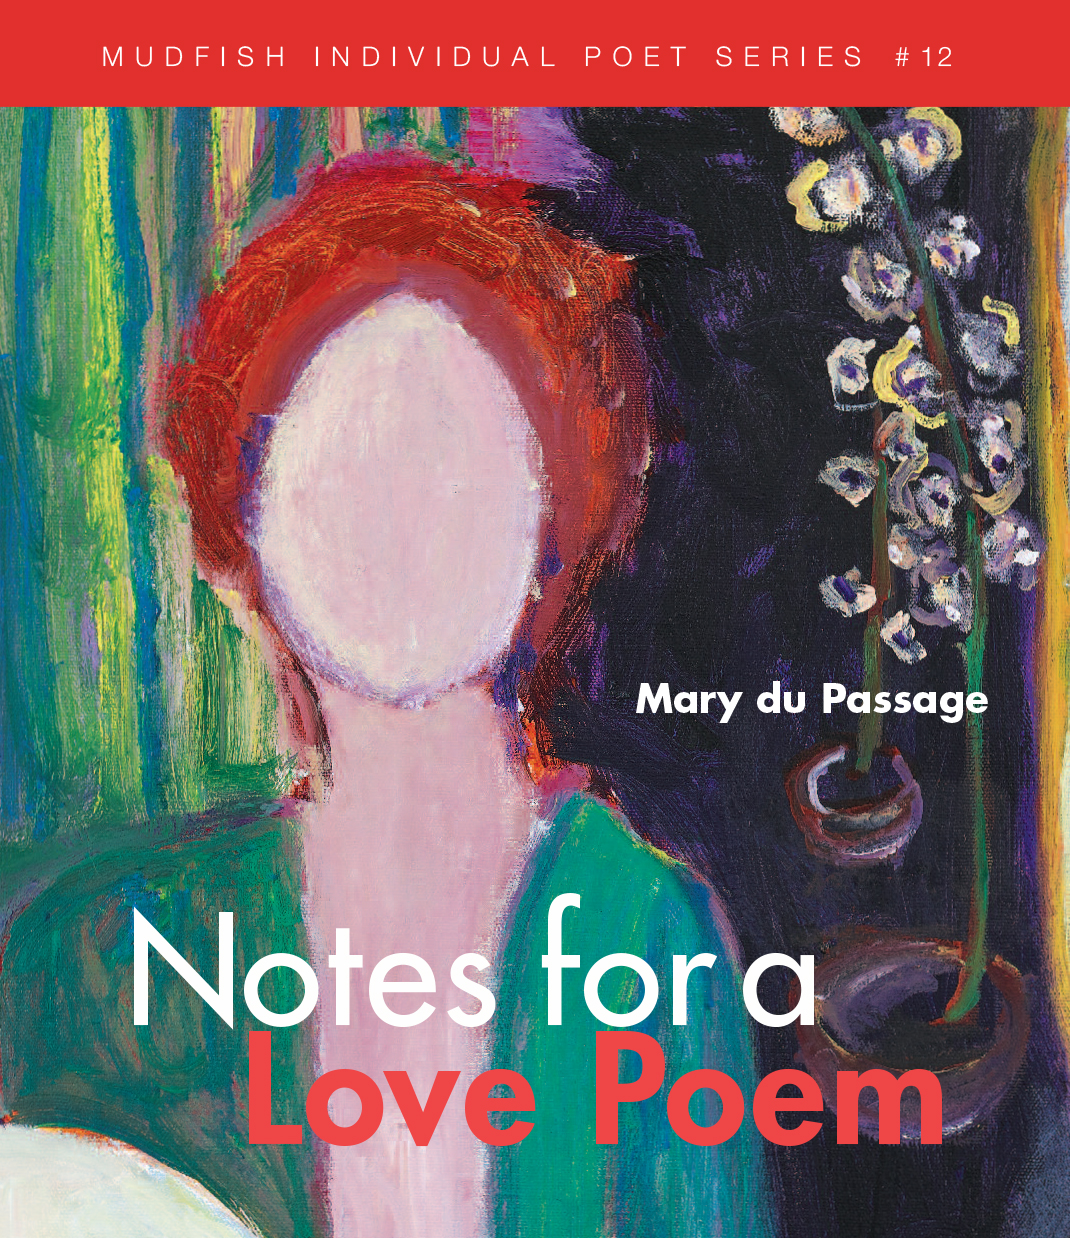 Notes for a Love Poem